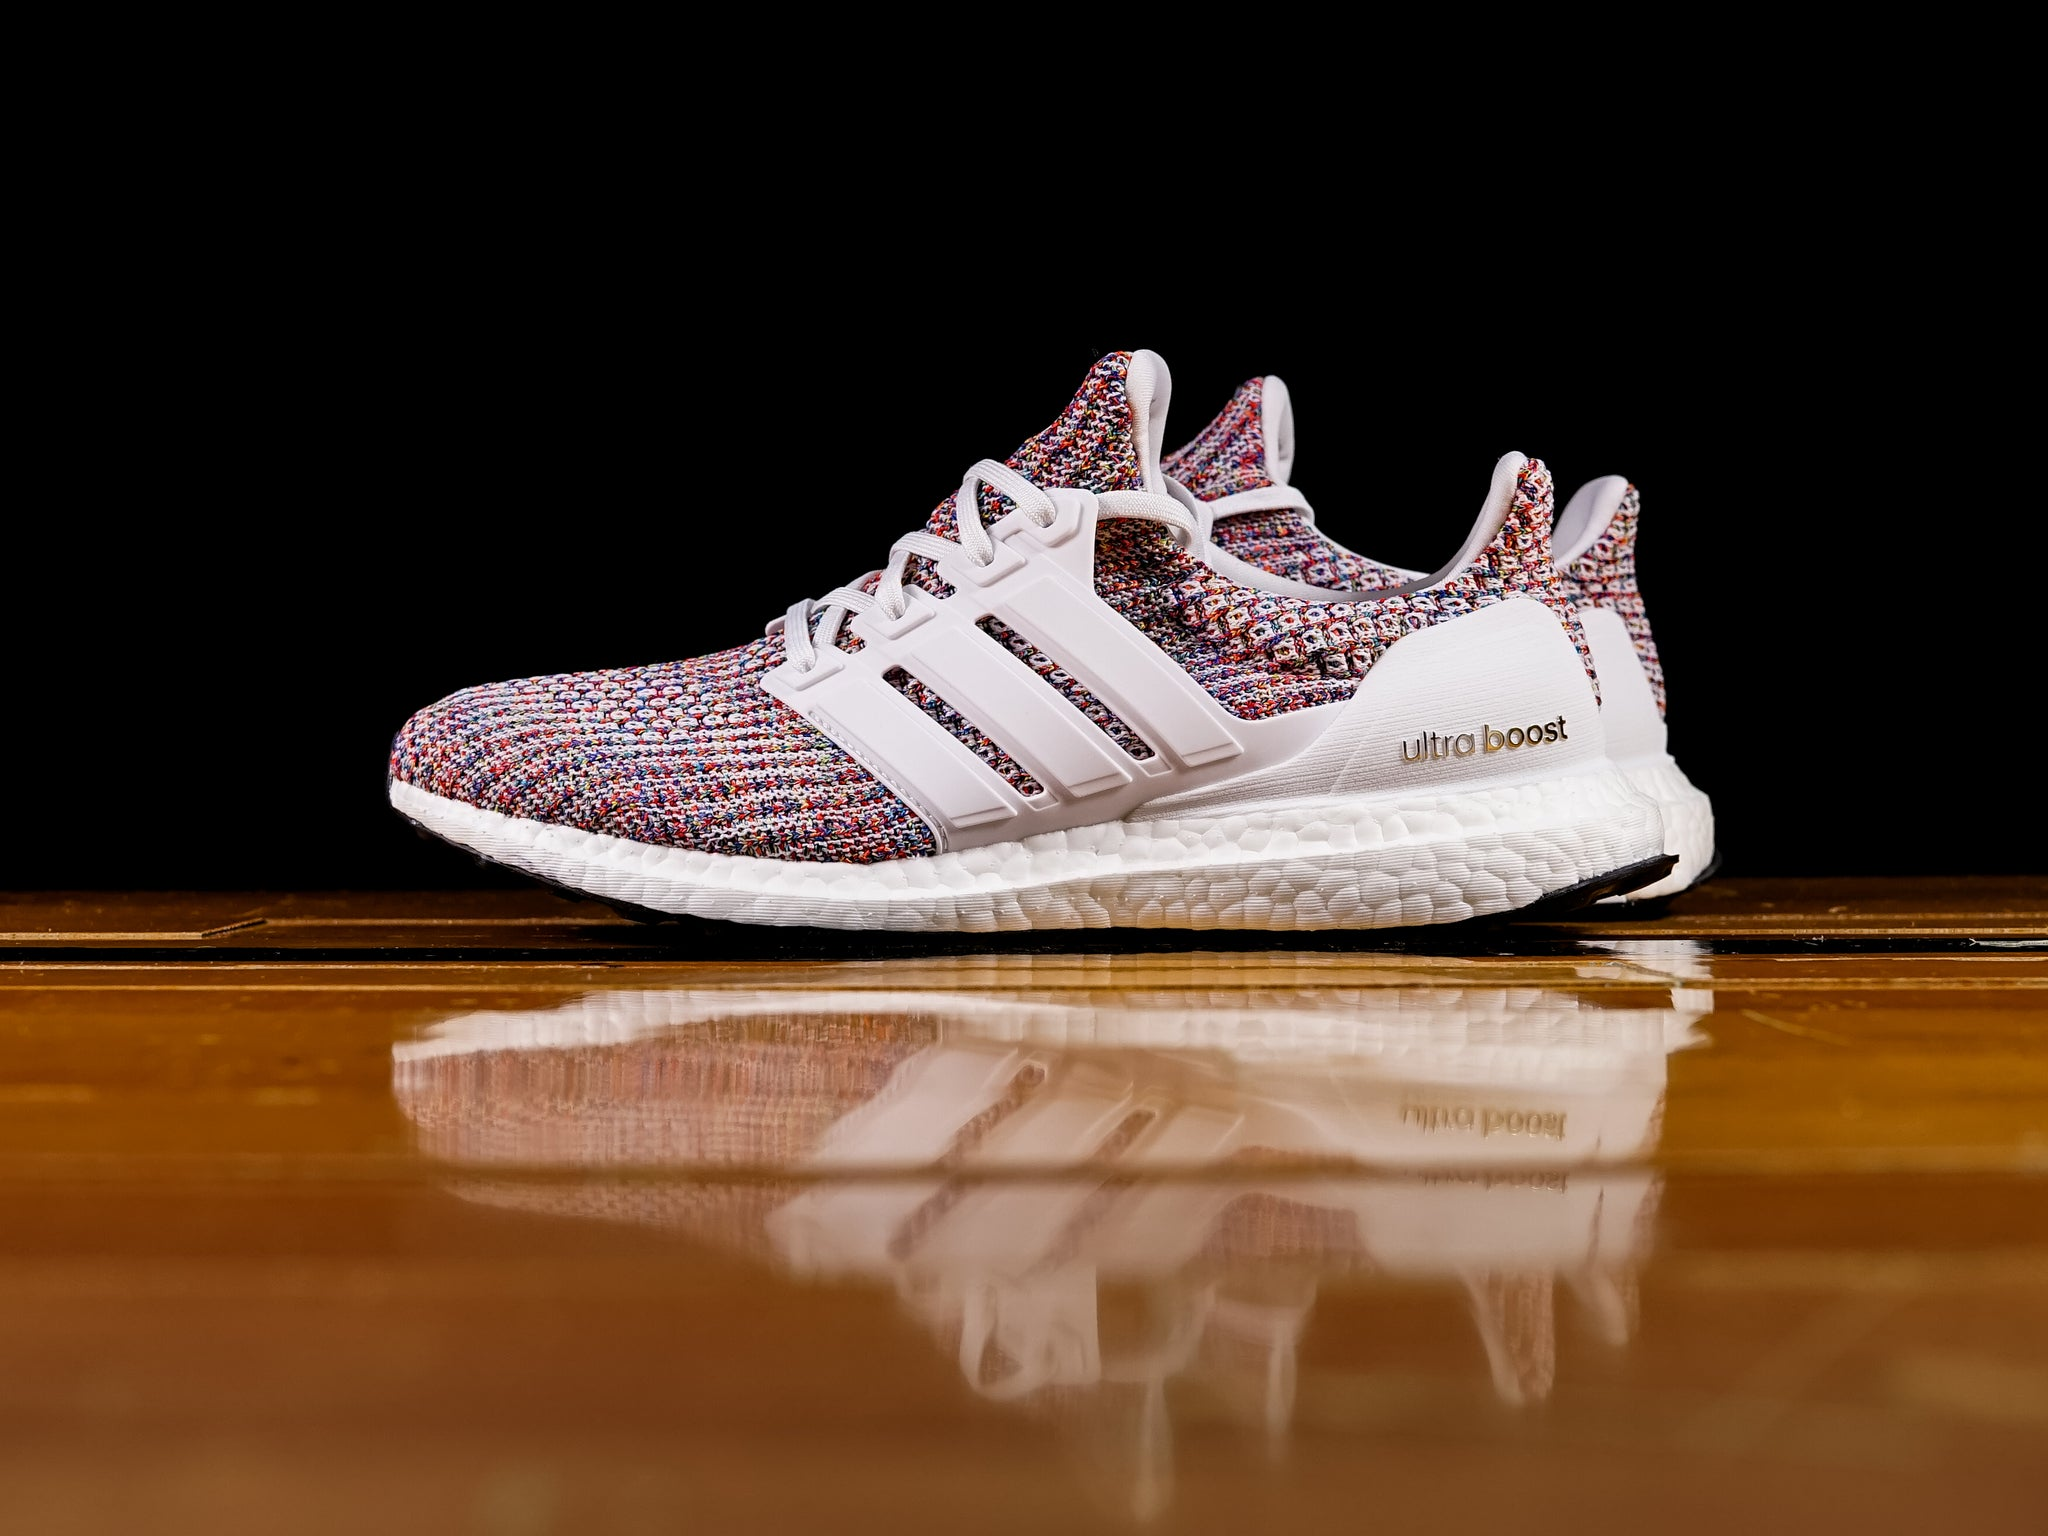 best website 4f21a 269d5 Men's Adidas Ultra Boost 4.0 'Multicolor' [CM8111]